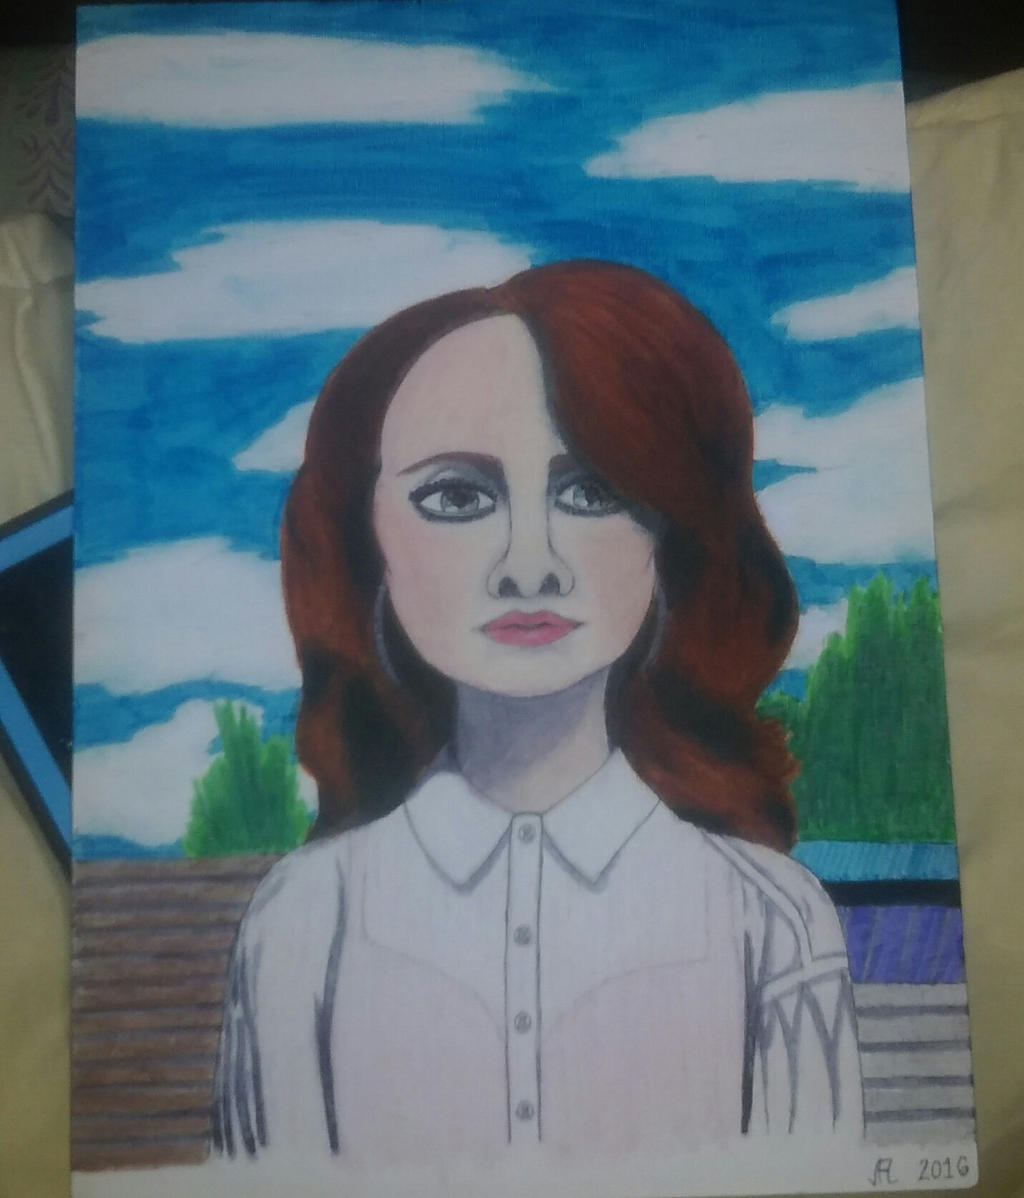 Lana Del Rey Mixed Media by GoddessOfVictory1 on DeviantArt